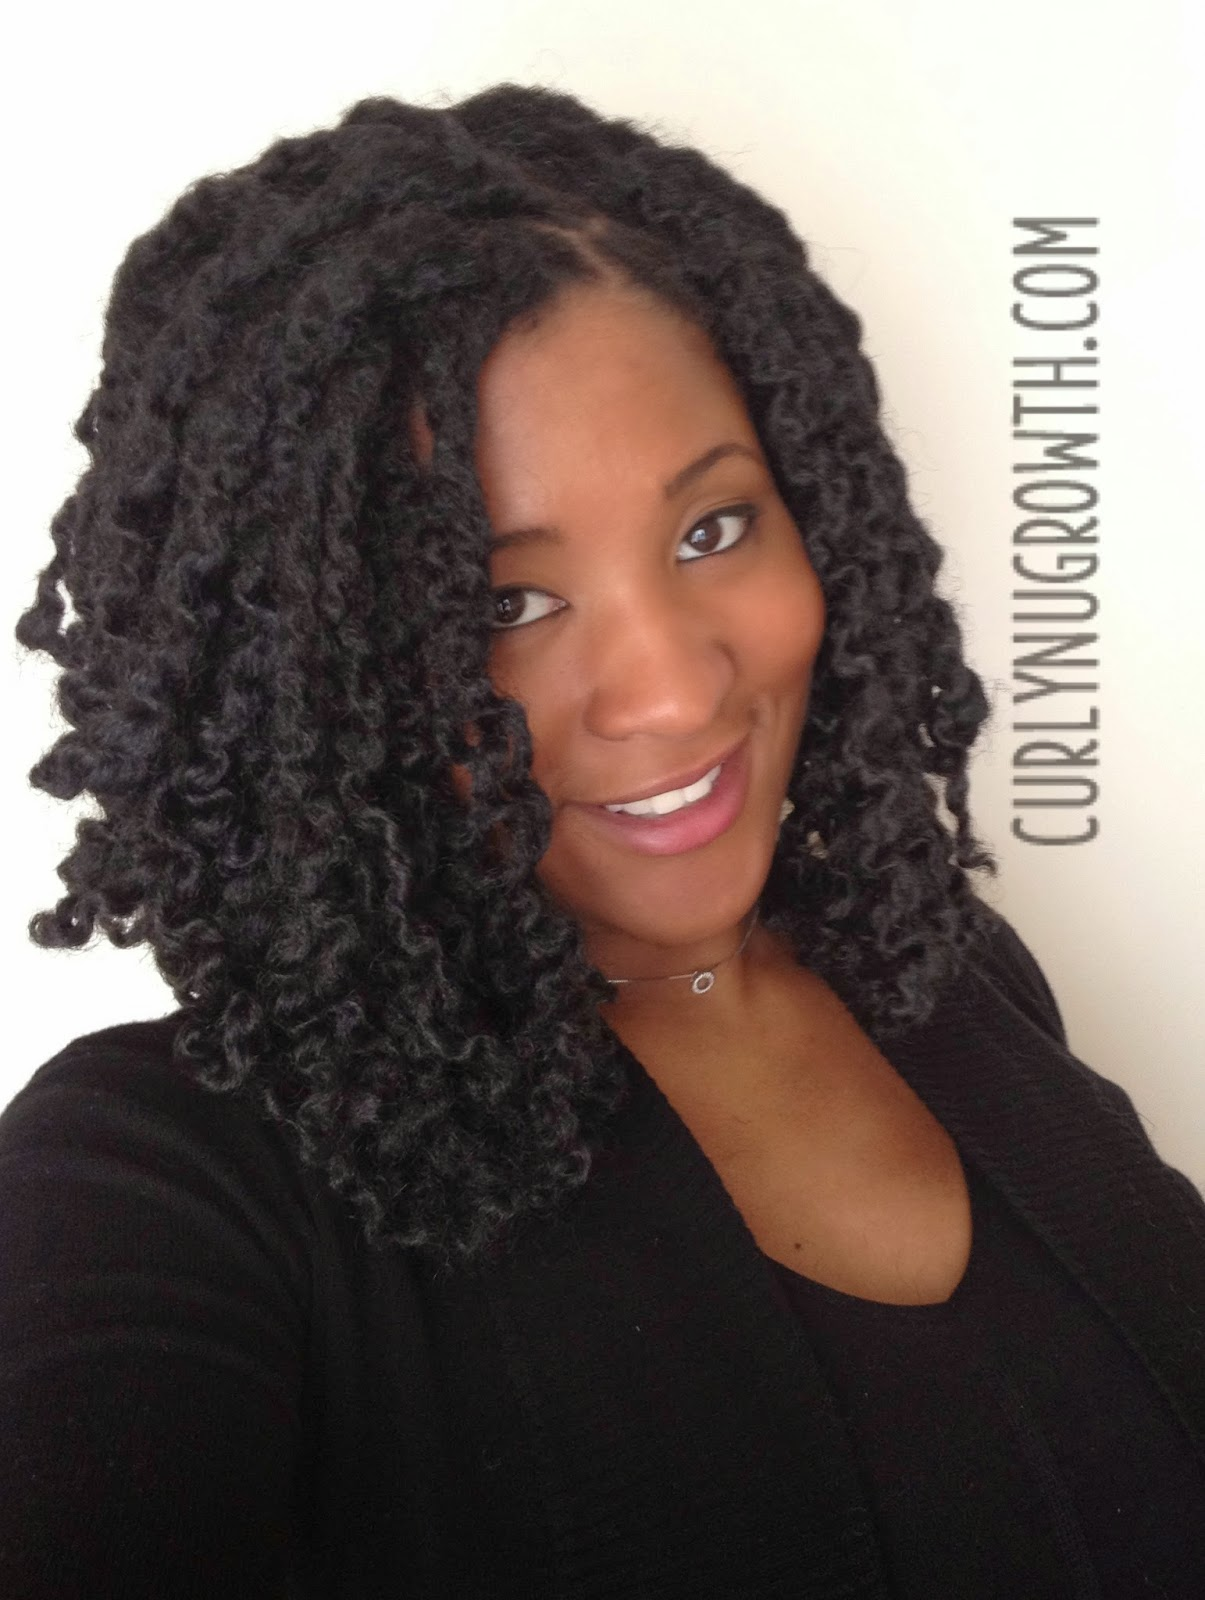 Crochet Marley Hair Twist Out : feel like the look was just as I imagined... Full with some natural ...